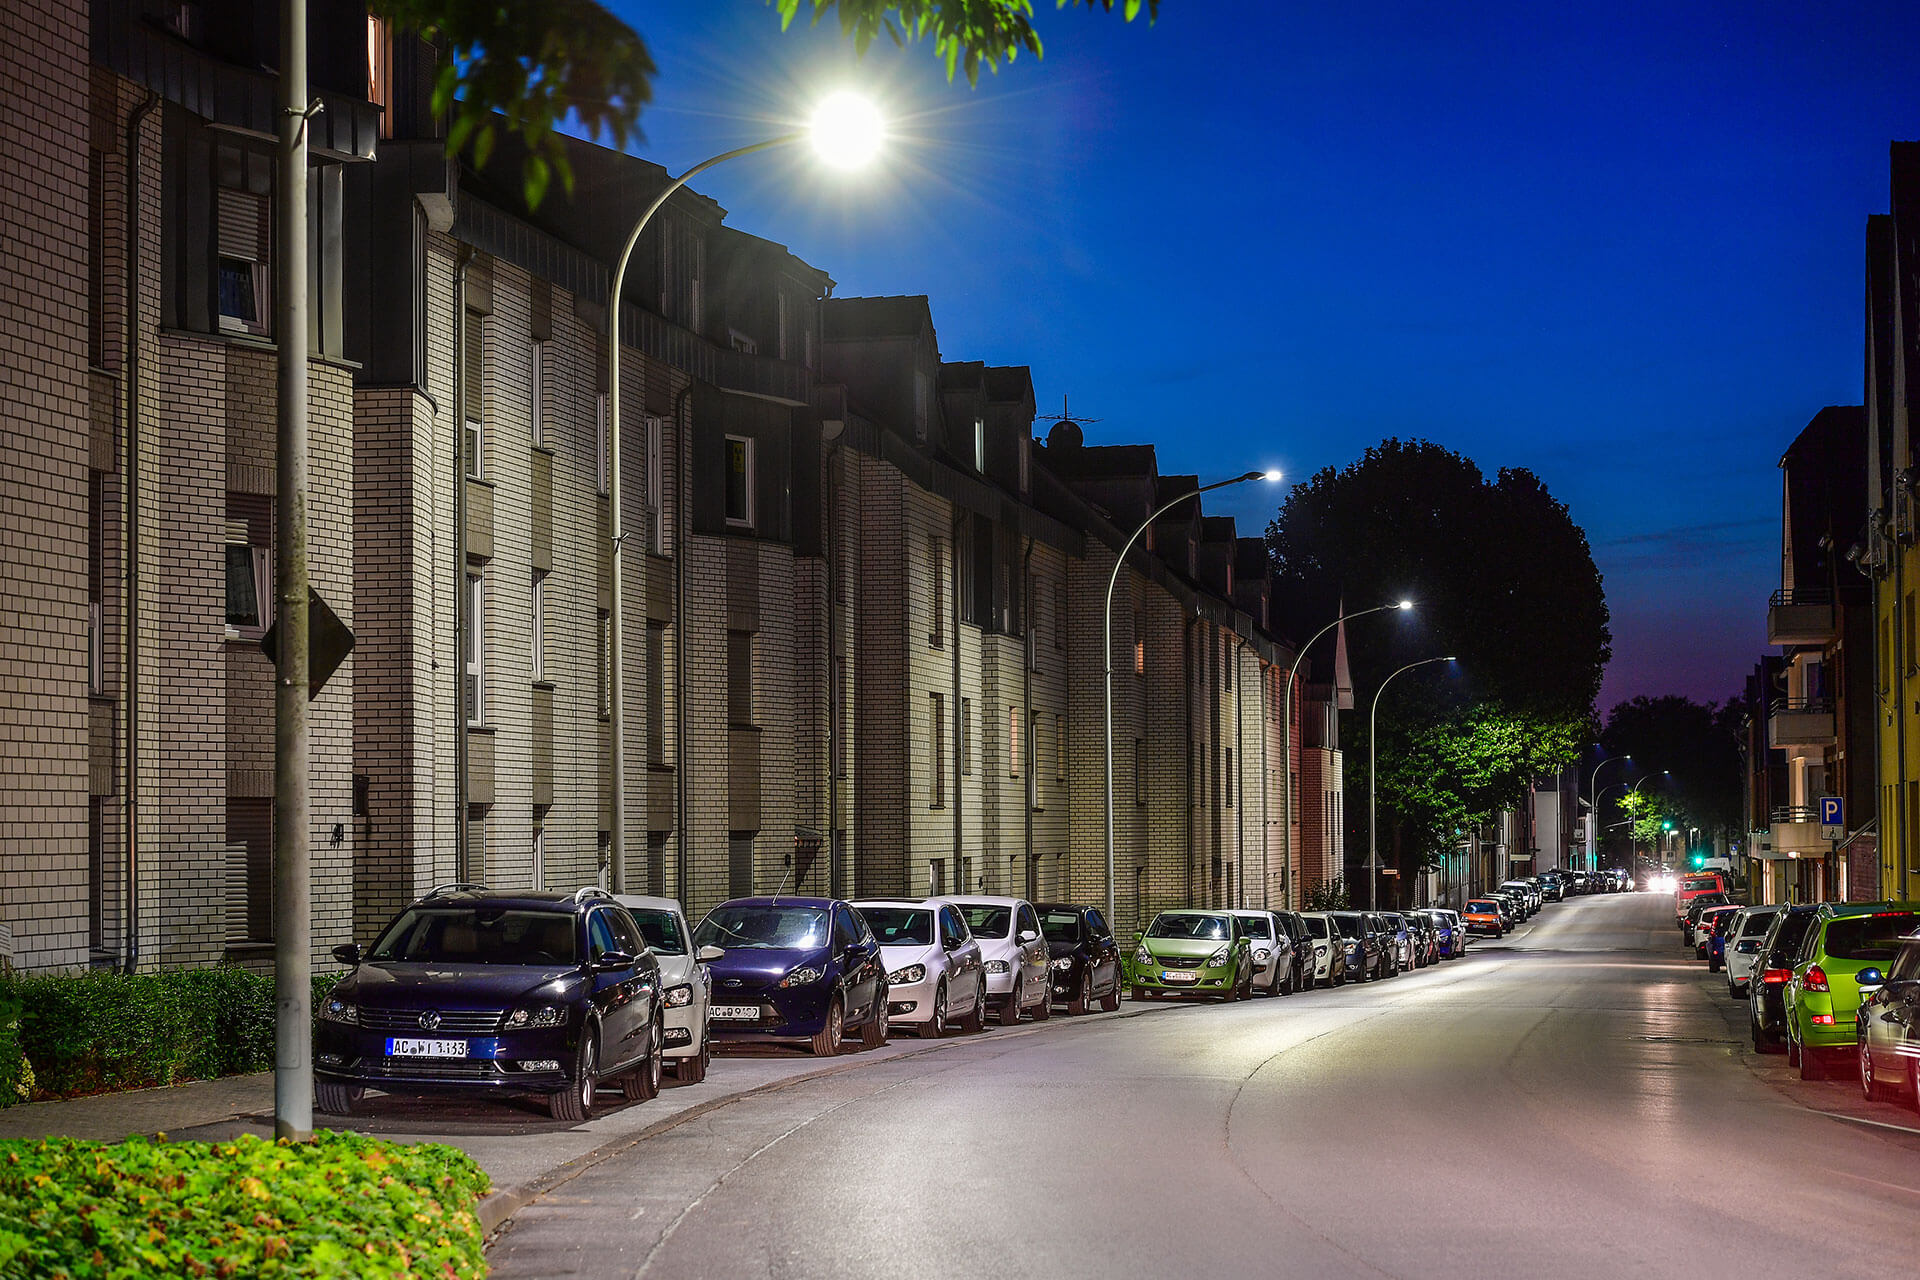 Ampera provides an energy-efficient lighting solution to reduce the carbon footprint of Herzogenrath and Würselen in Germany